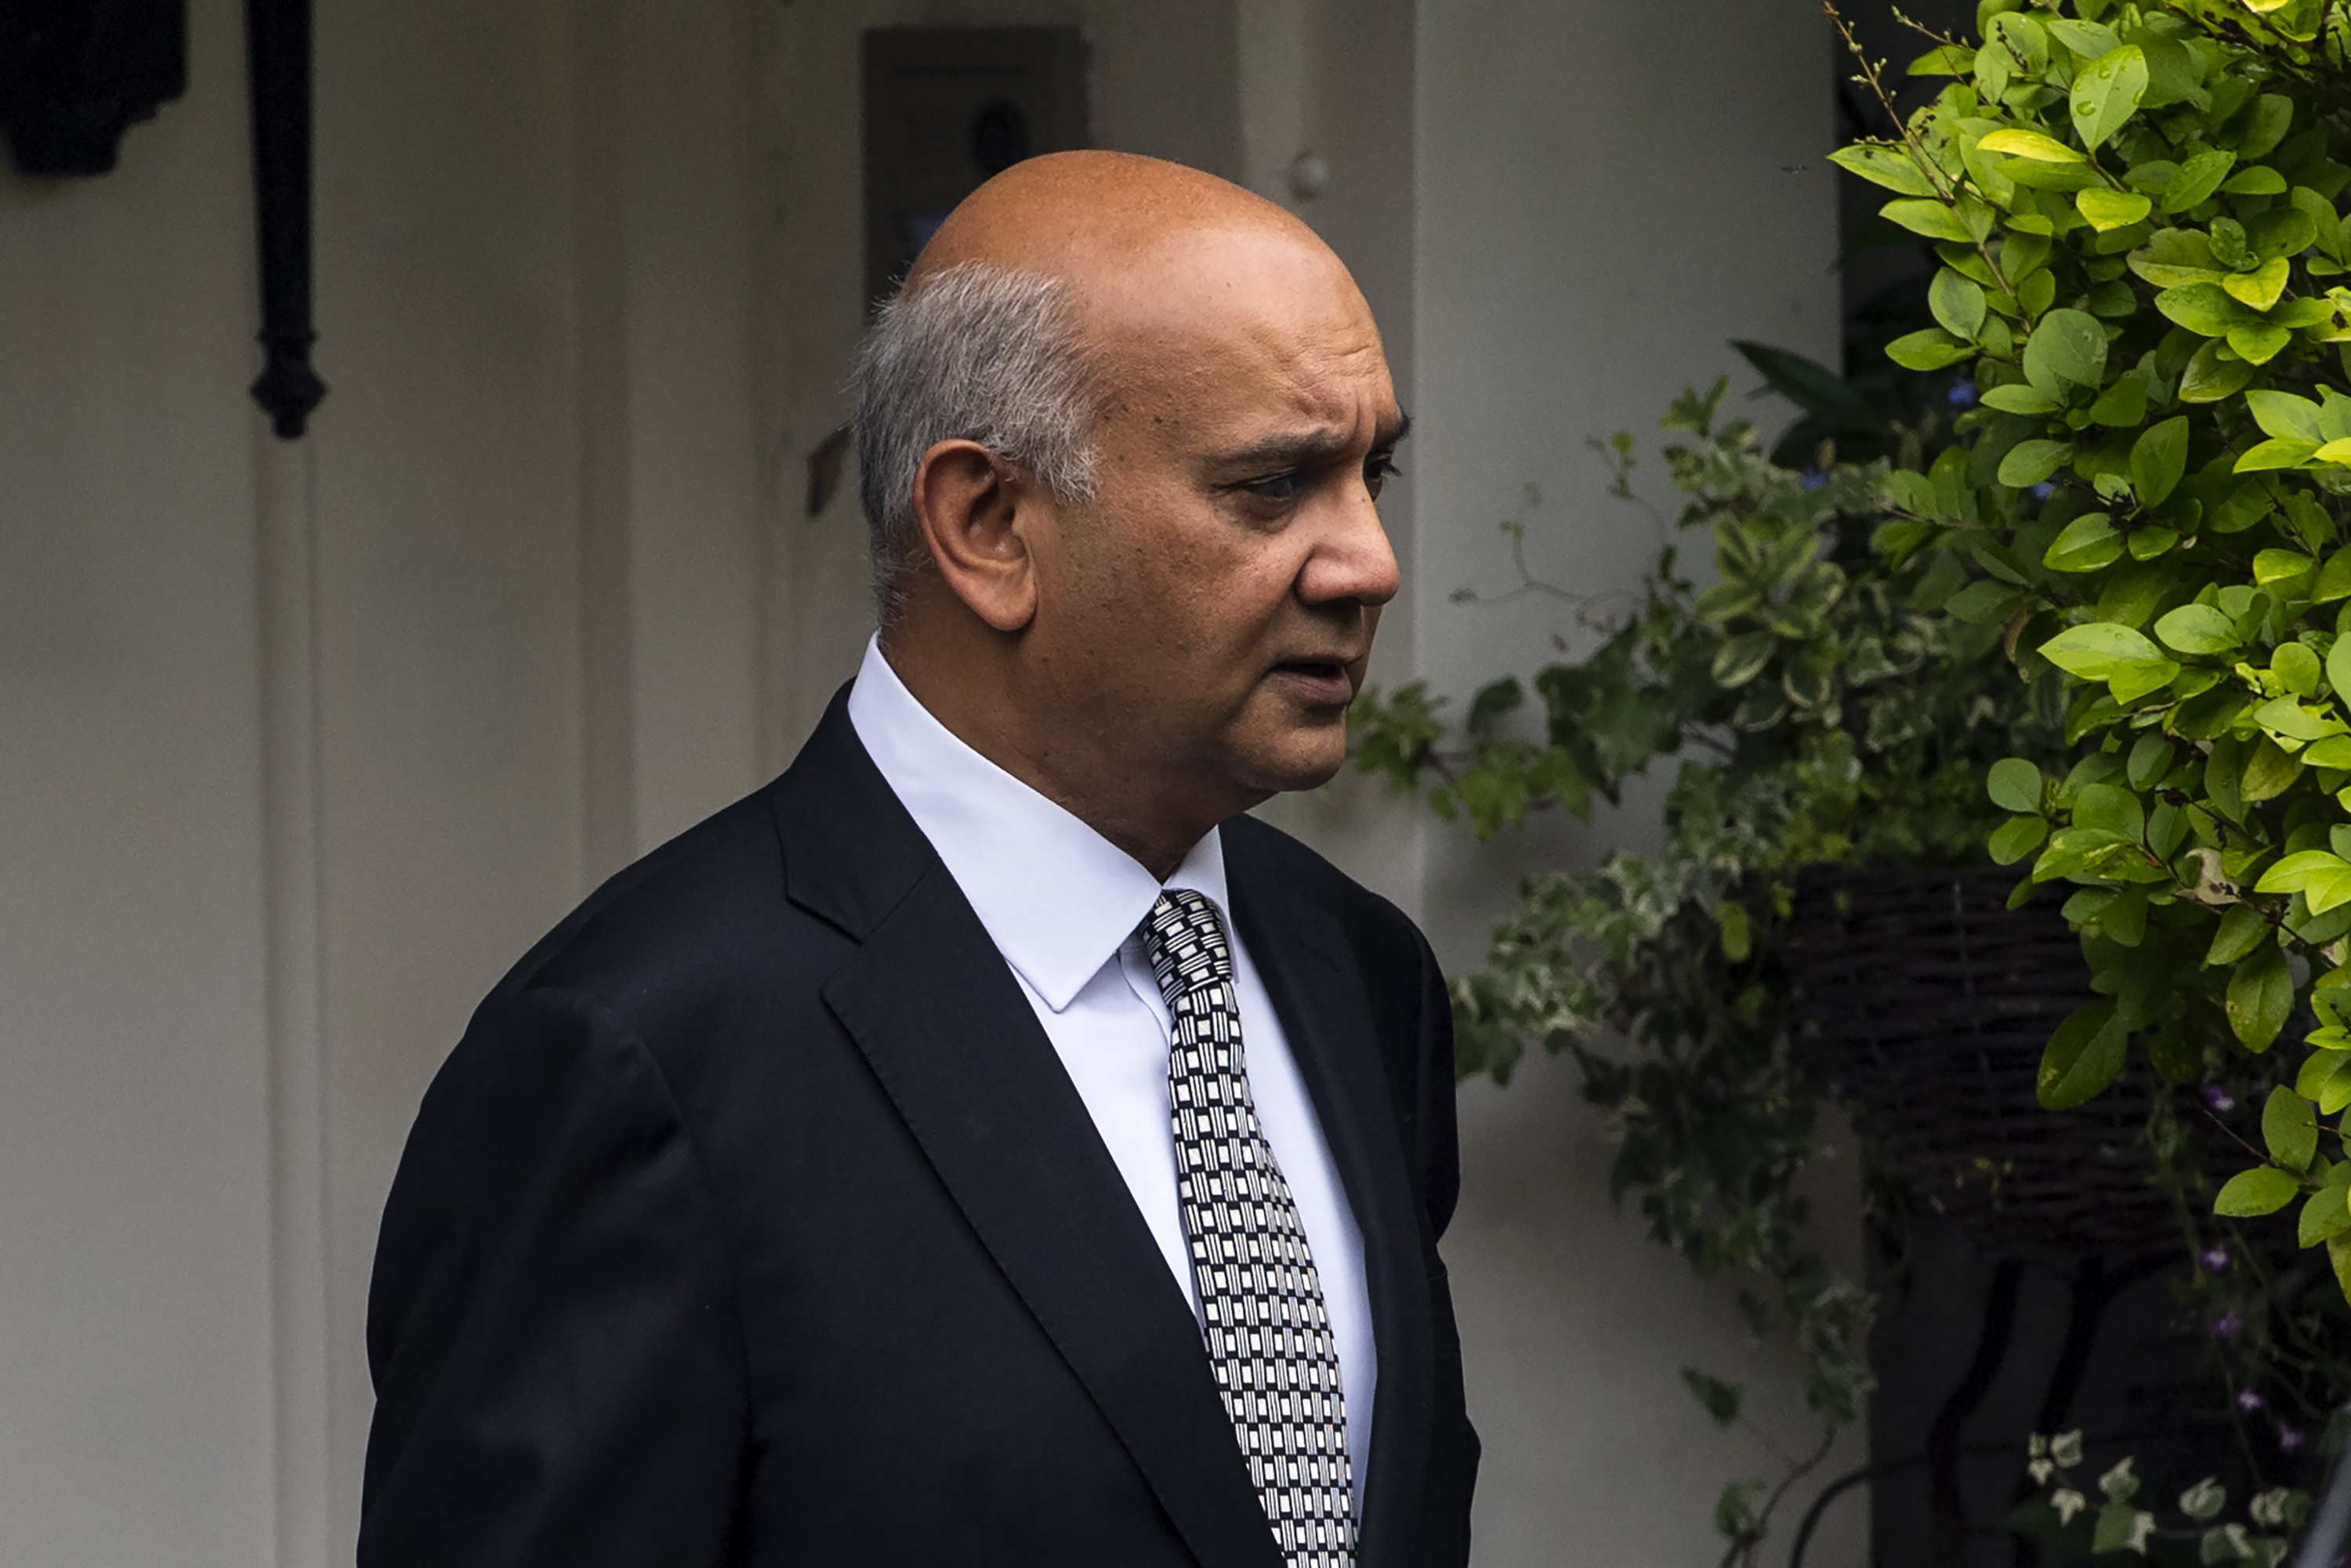 This Is The Full Conversation Keith Vaz Had With Those Male Prostitutes GettyImages 599453852